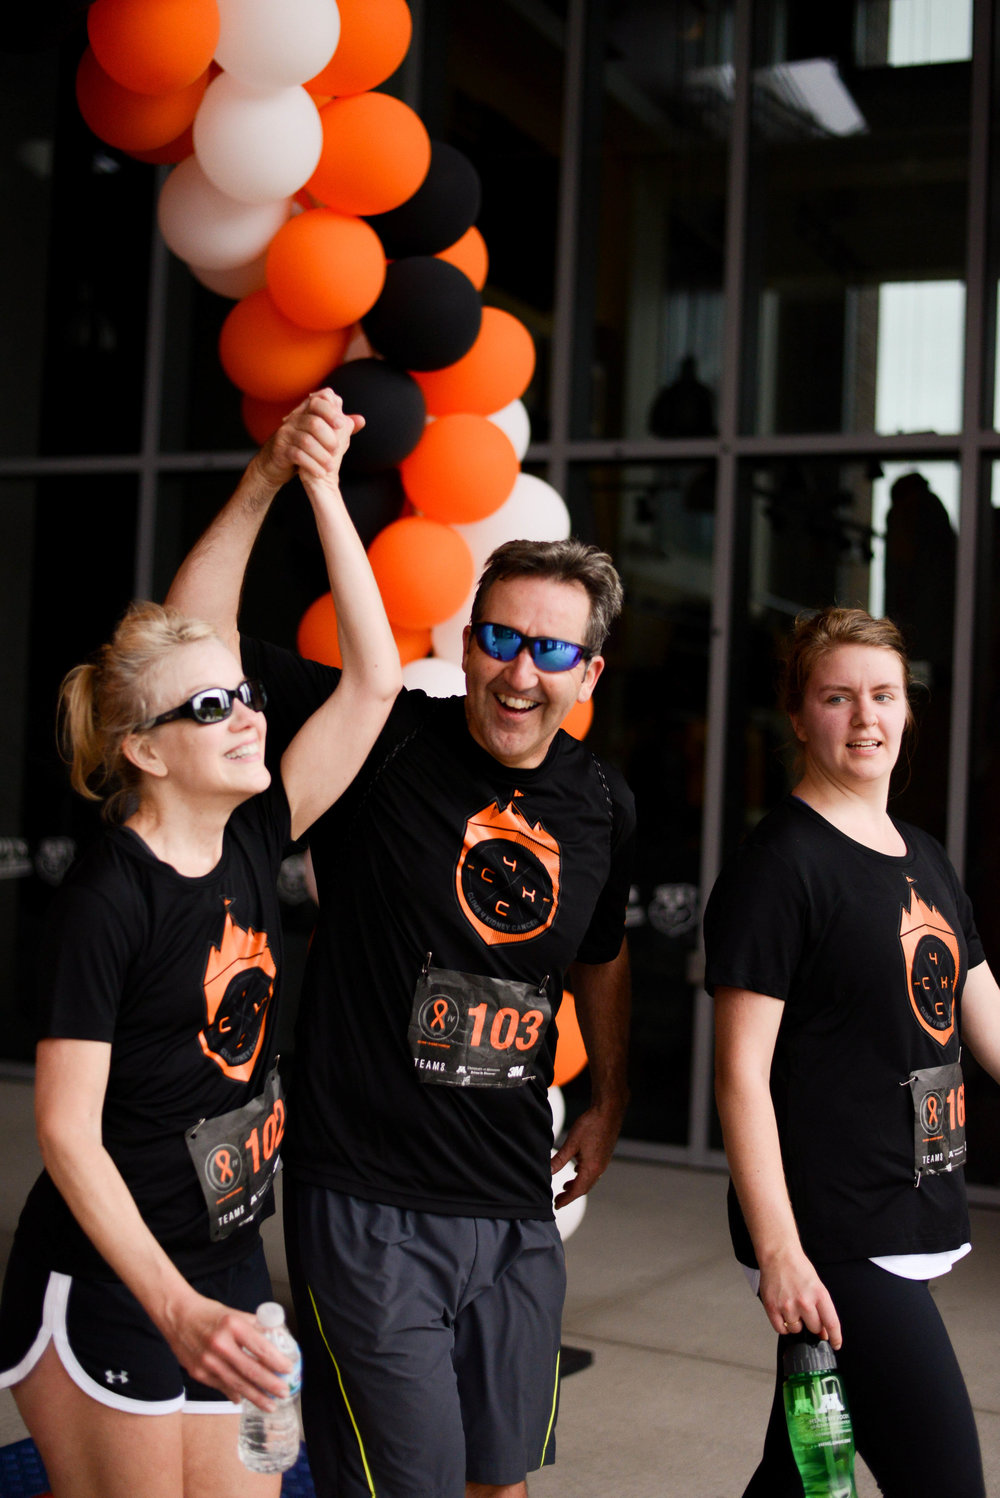 climb for kidney cancer -